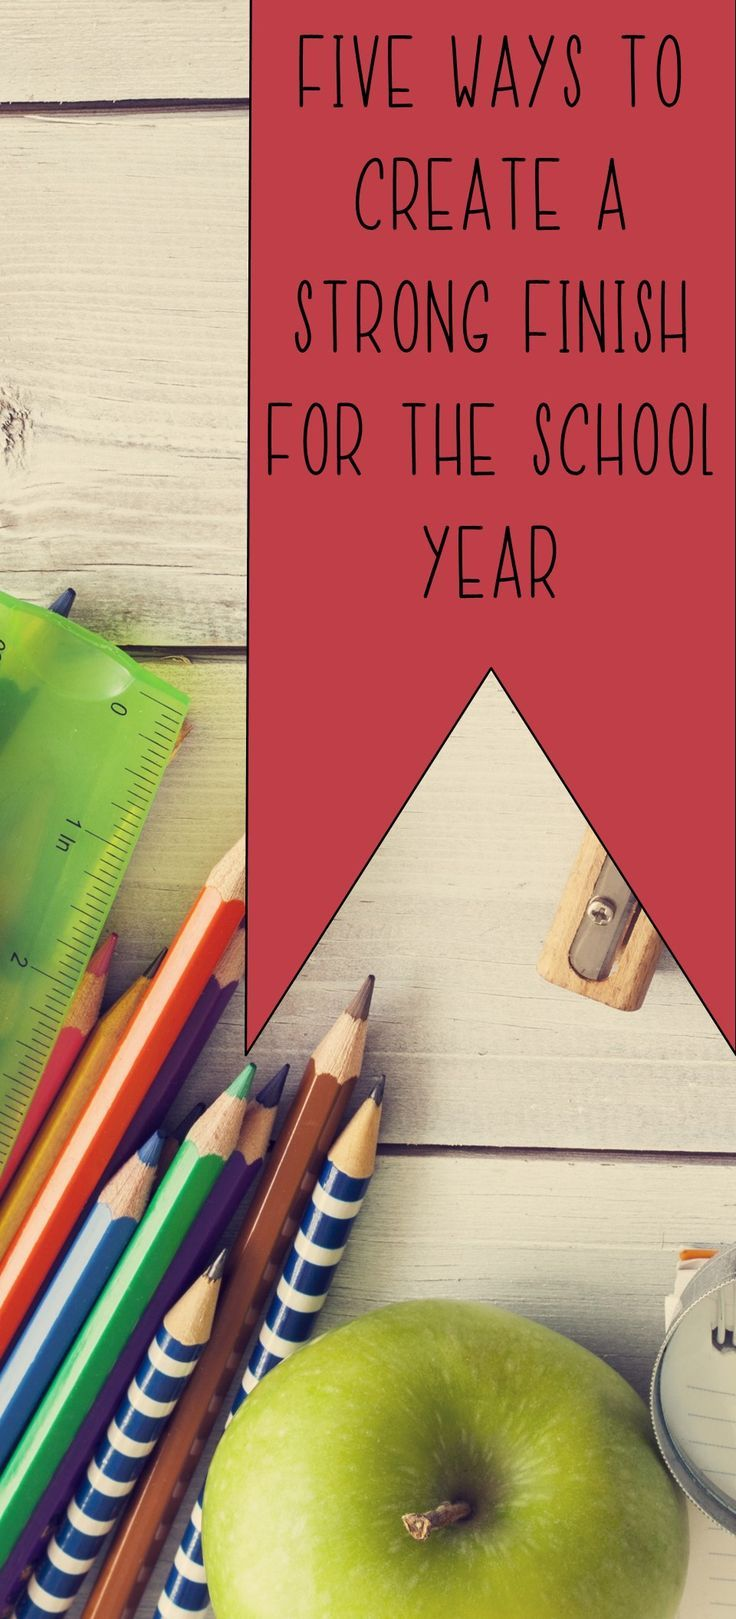 Here are five different ways to end your school year and keep your students learning at the same time!  Review games, task cards, evaluations, and projects -- students will reflect on their learning.  Great lesson plan ideas that include digital learning as well.